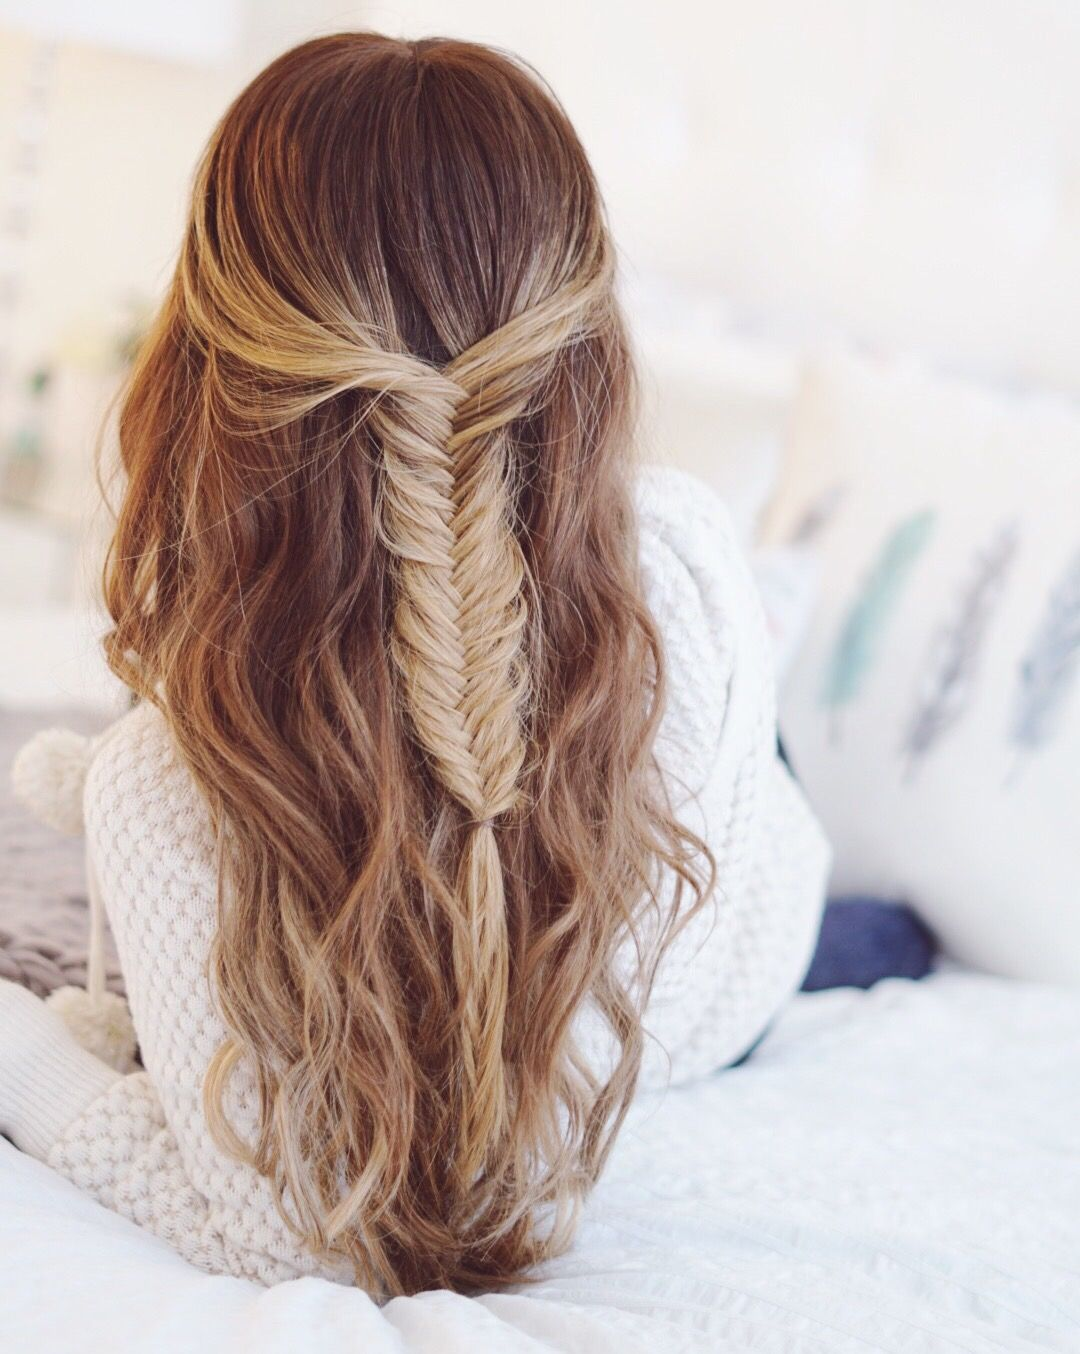 Half Up Half Down Fishtail Braid With Tressmerize Hair Topper And Hair Extensions Fish Tail Braid Half Up Hair Hair Styles